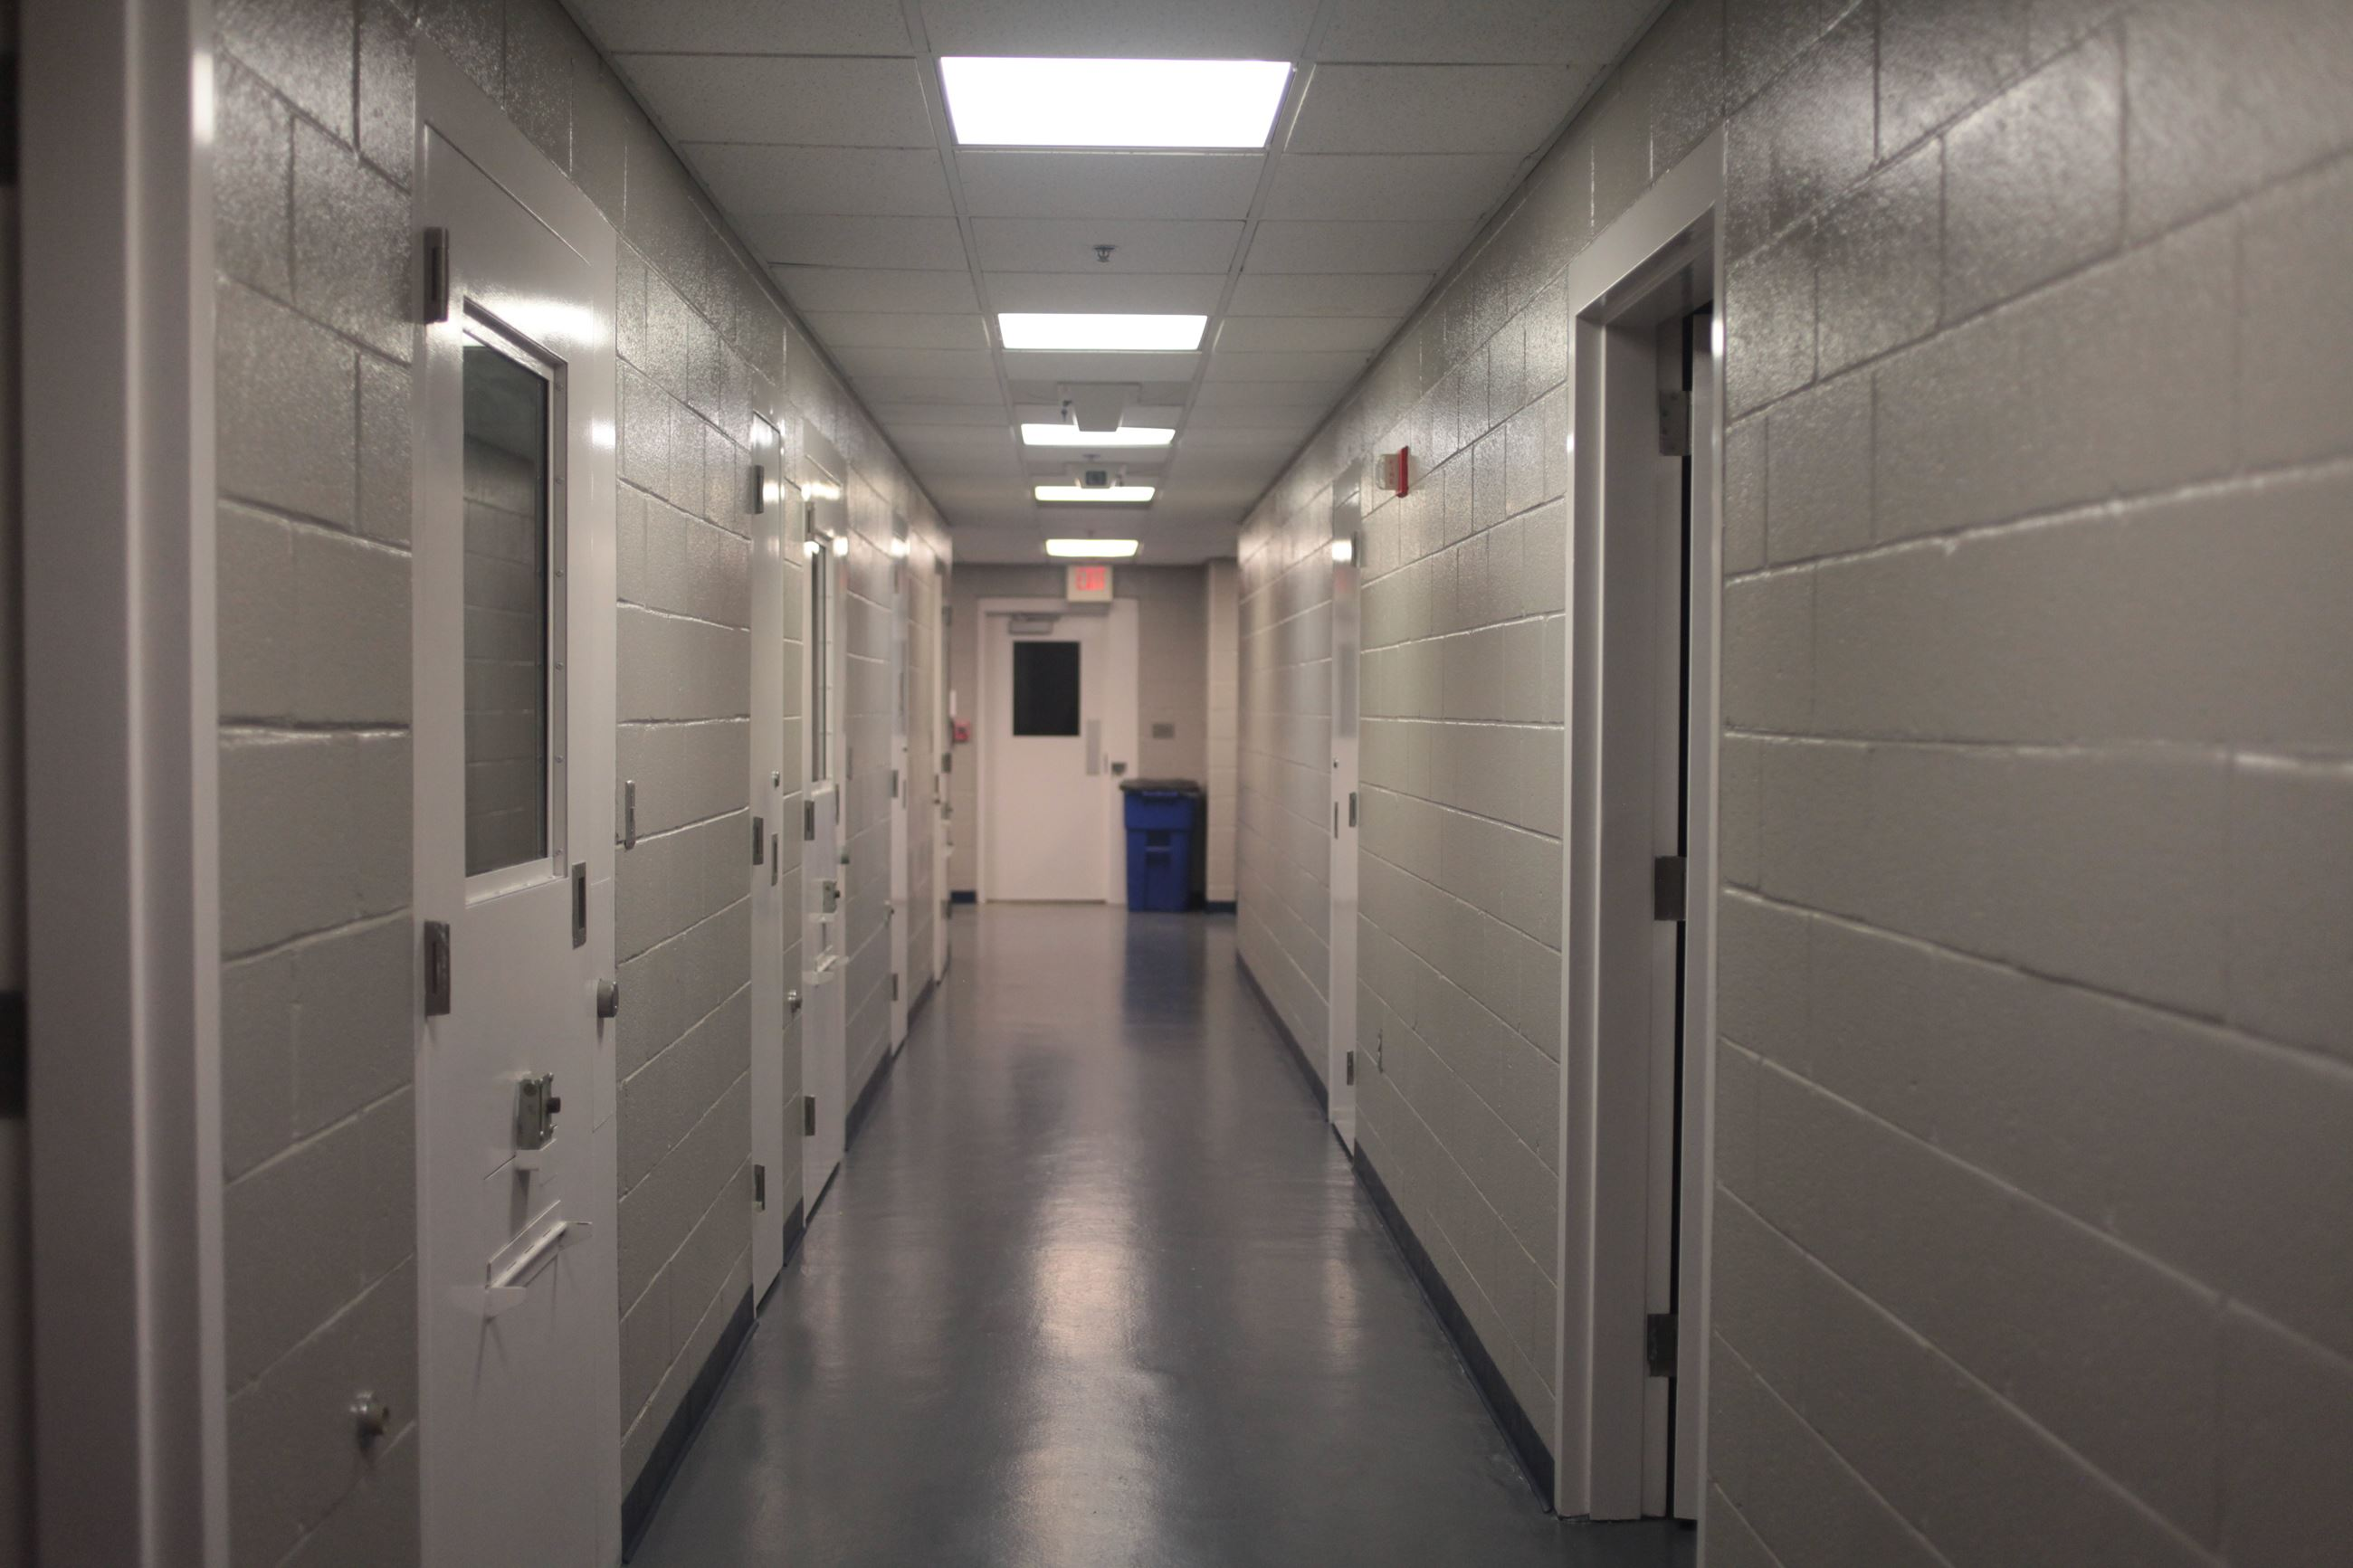 Detention Center Hallway